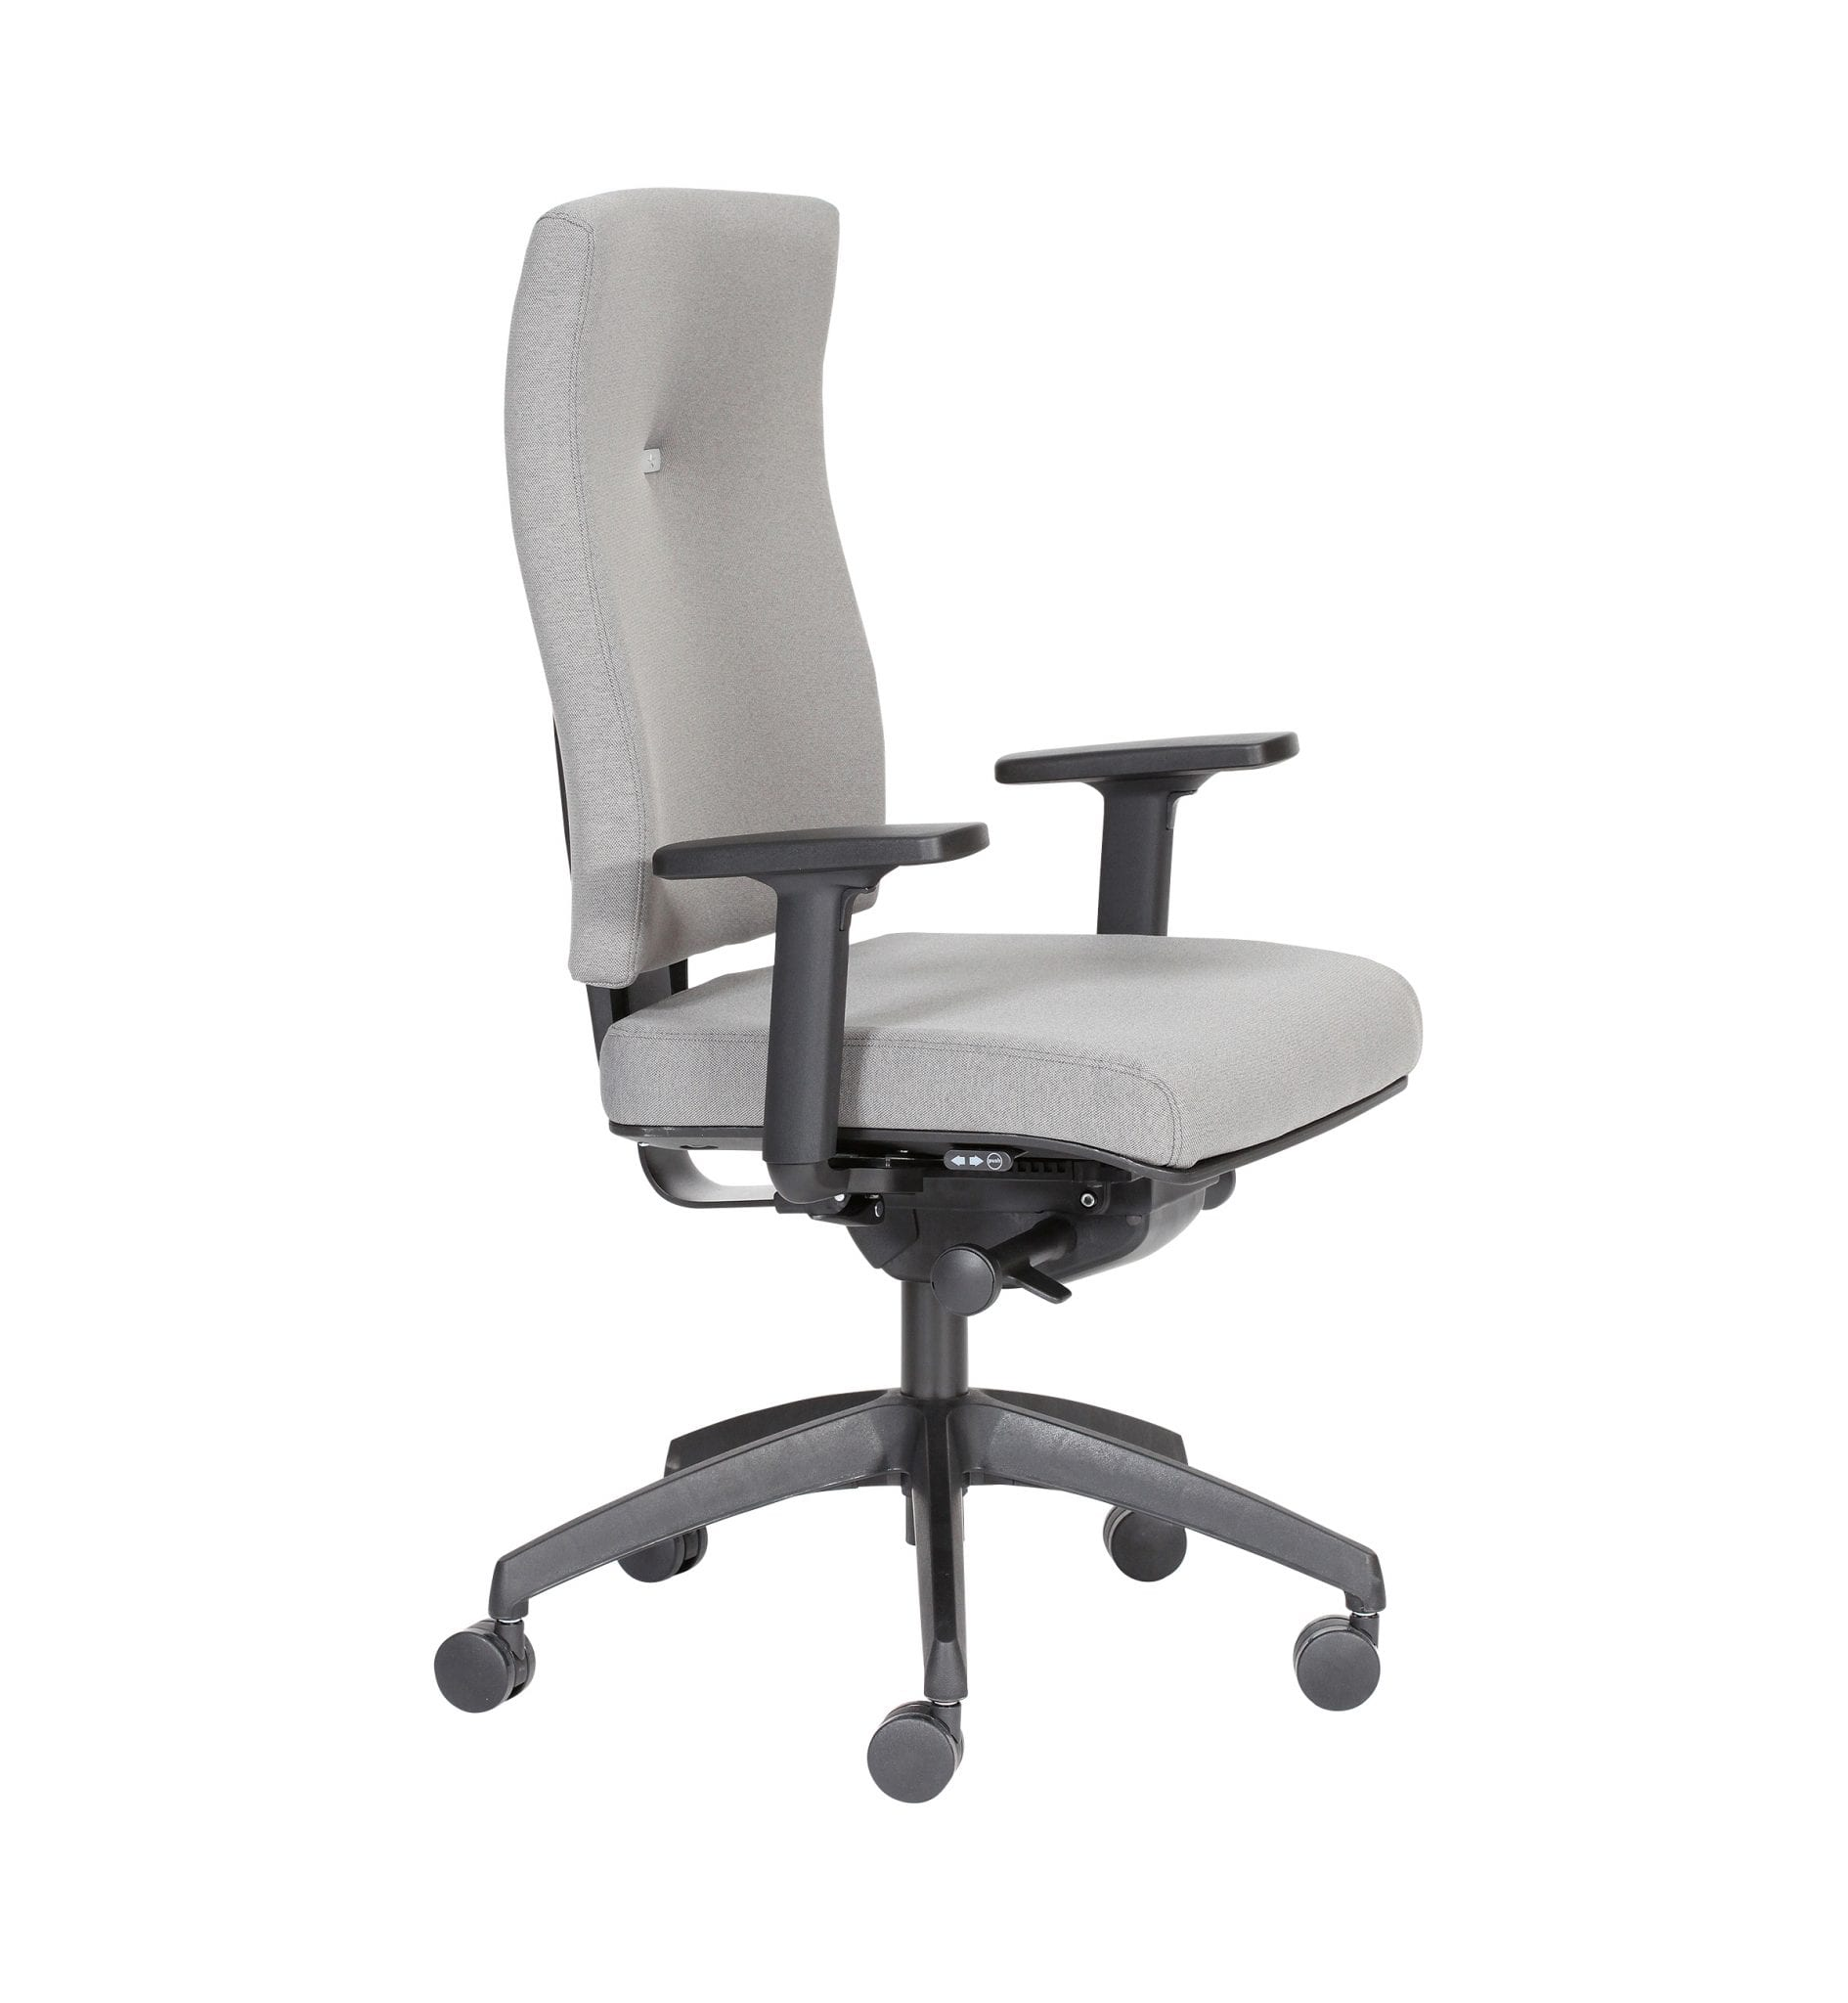 IM22ADJ - Impact – Impact task office chair with lumbar support and Operator Plus mechanism and multi-adjustable arms